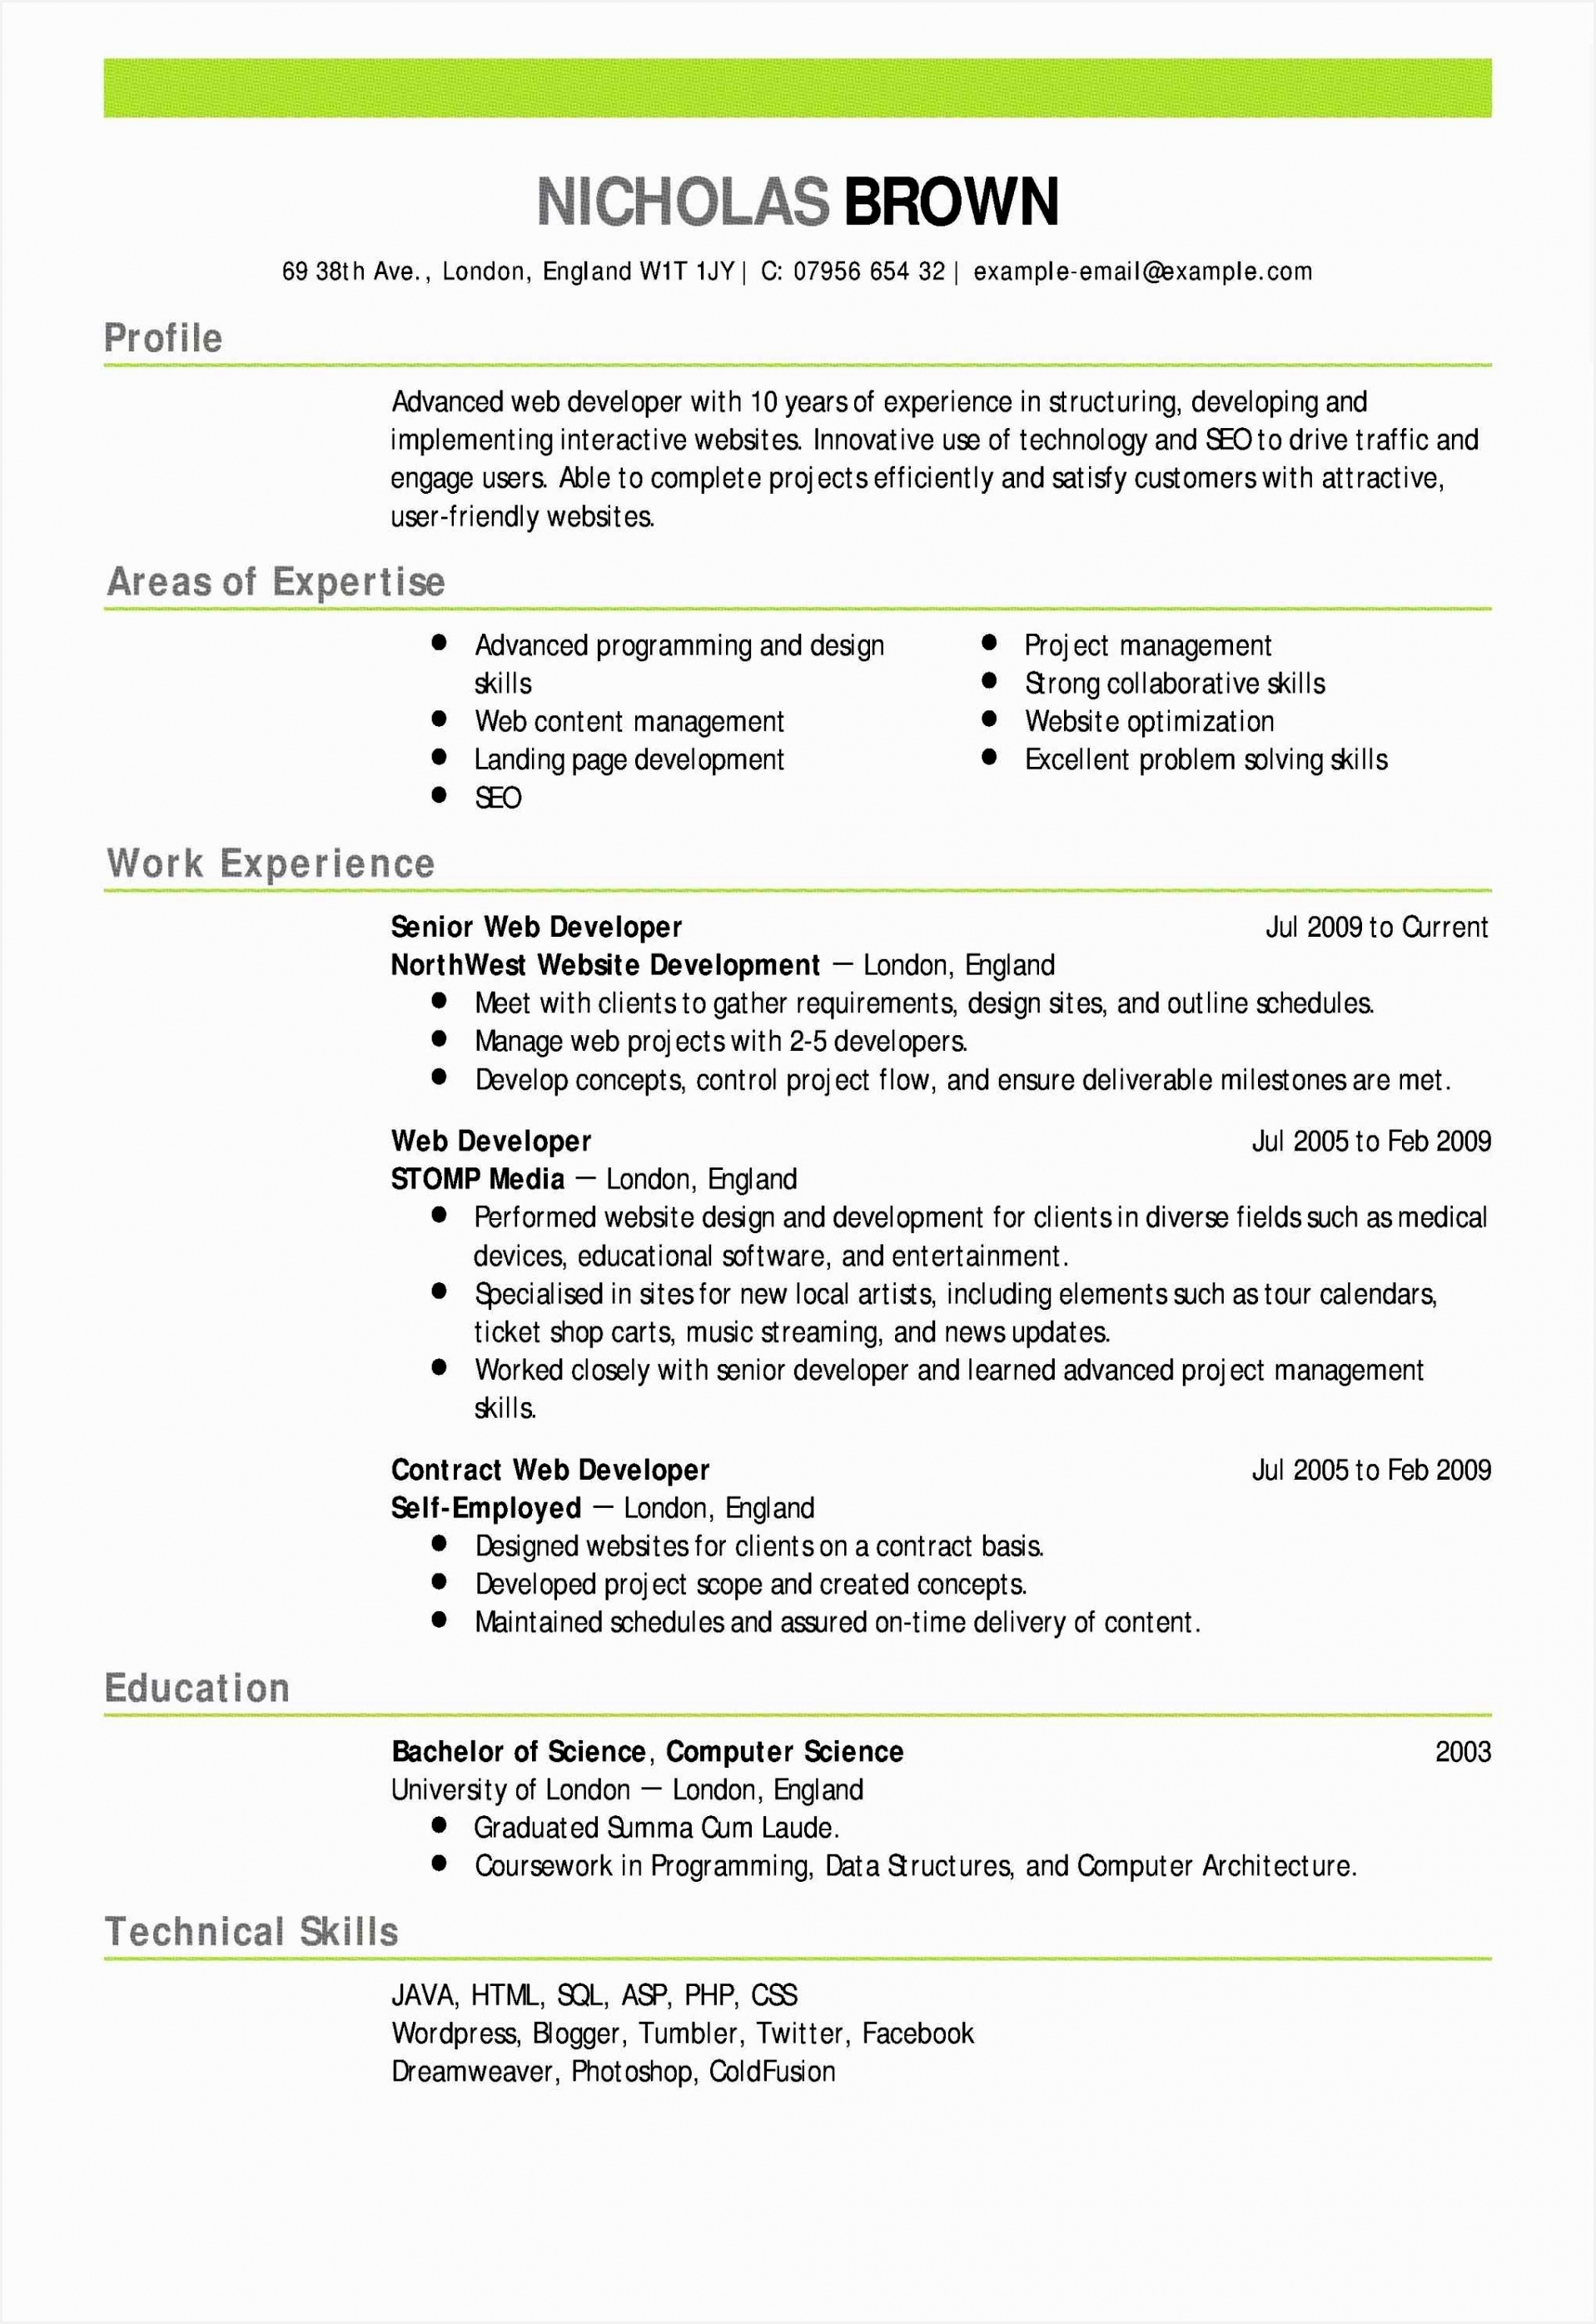 Experienced Resume Template O5mtt Beautiful 17 Templates & Samples Resume Template Singapore Free Resume27911917